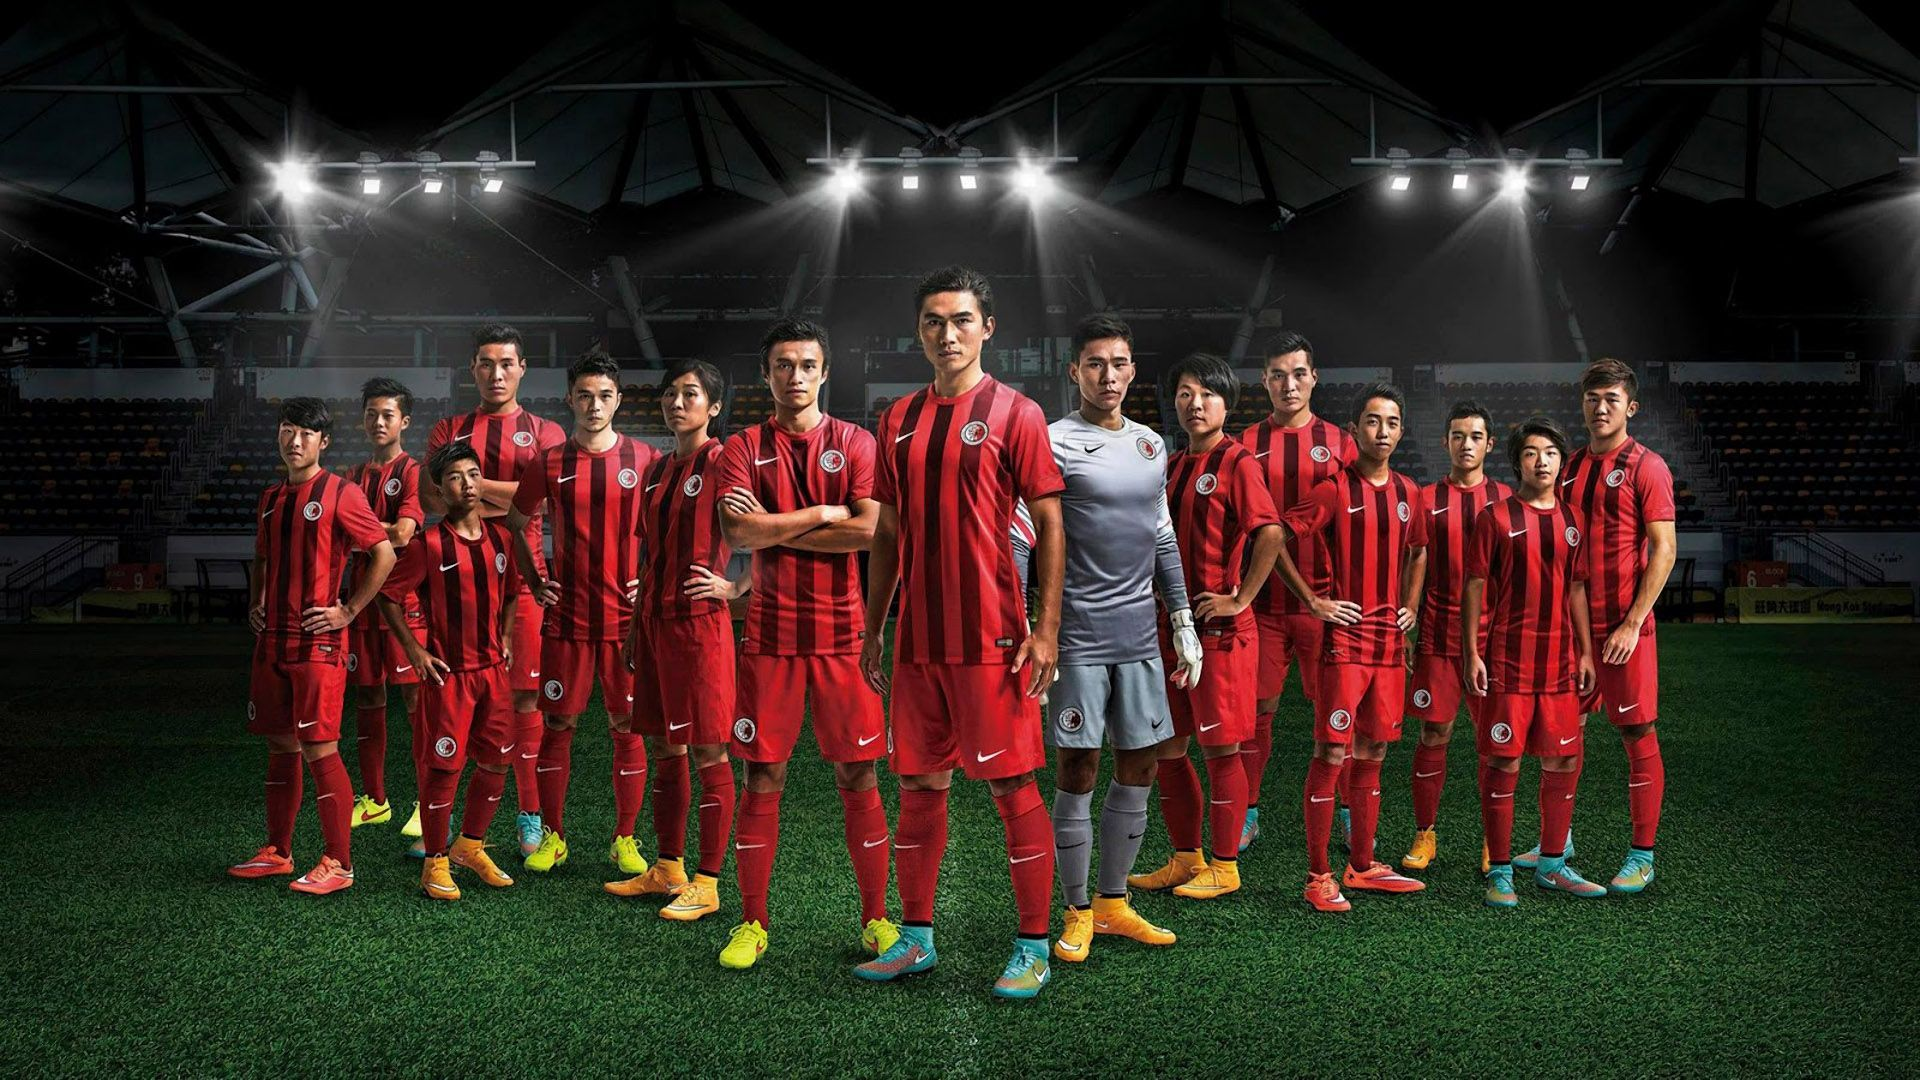 Nike-Soccer-Cave-wallpaper-wpc9008135